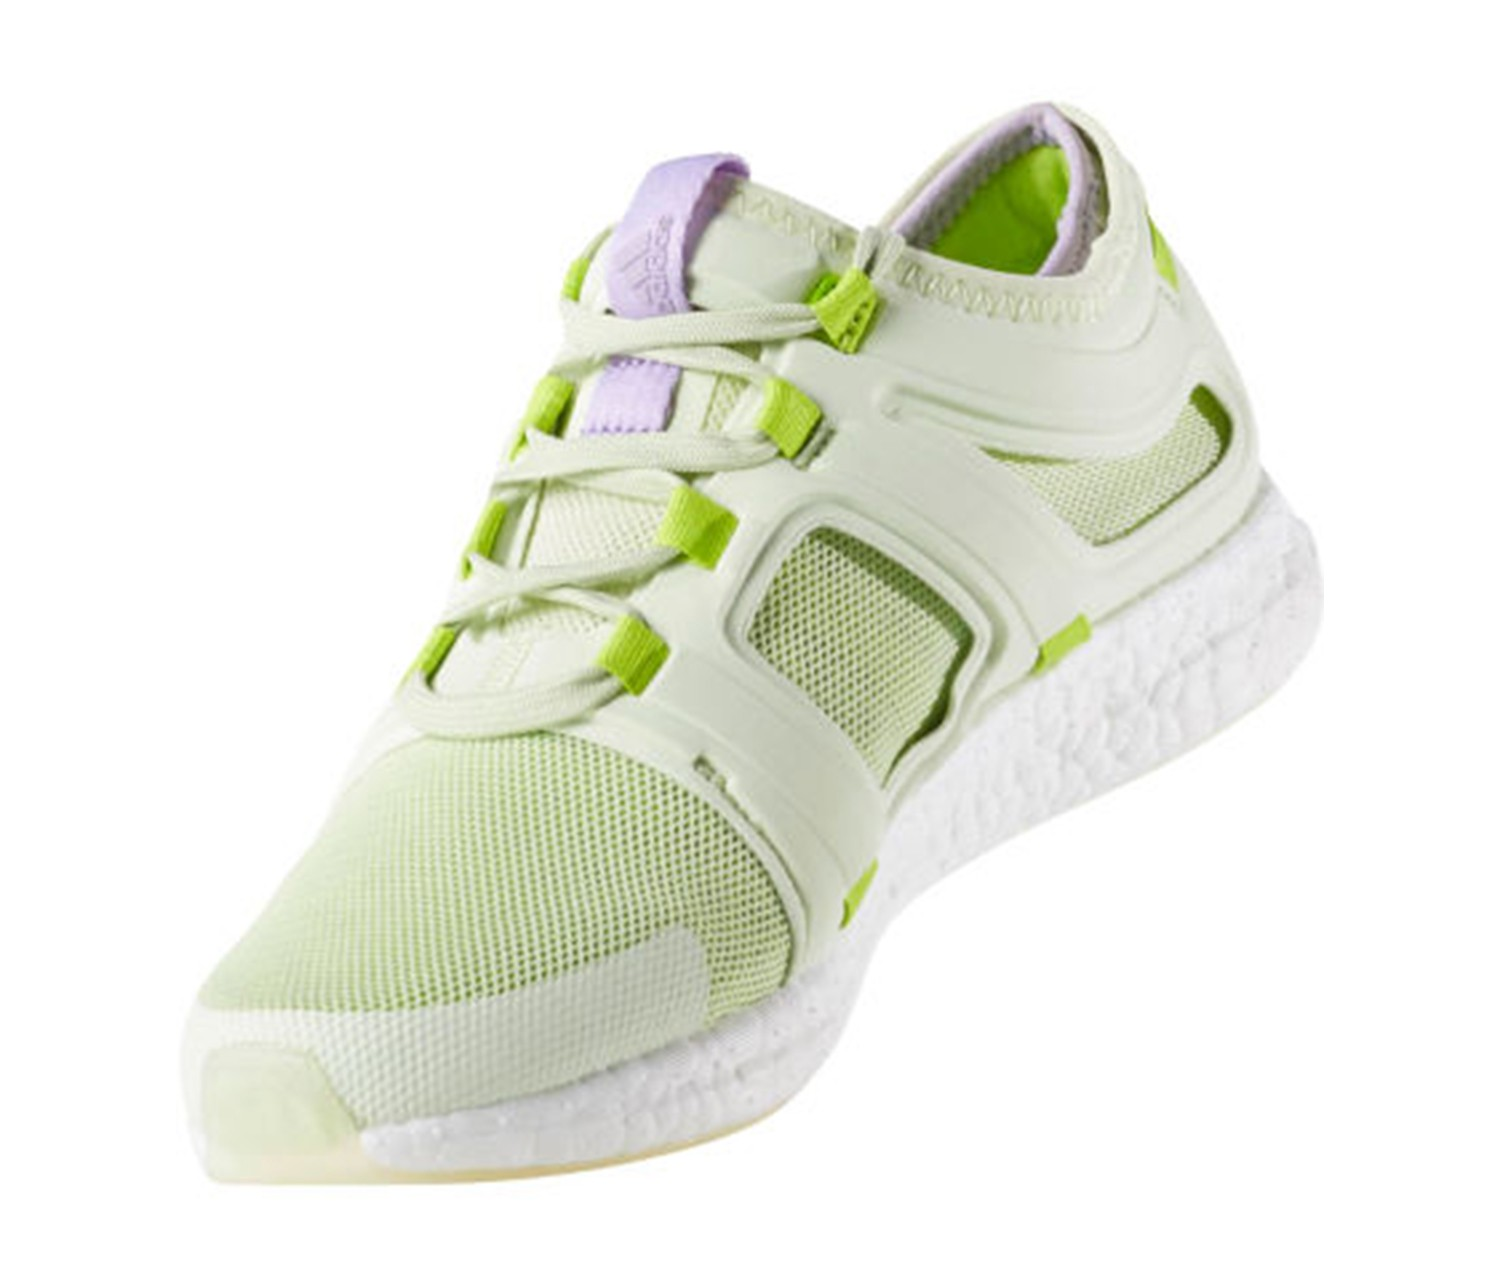 Climachill Rocket Boost CC W Running Shoes, Green